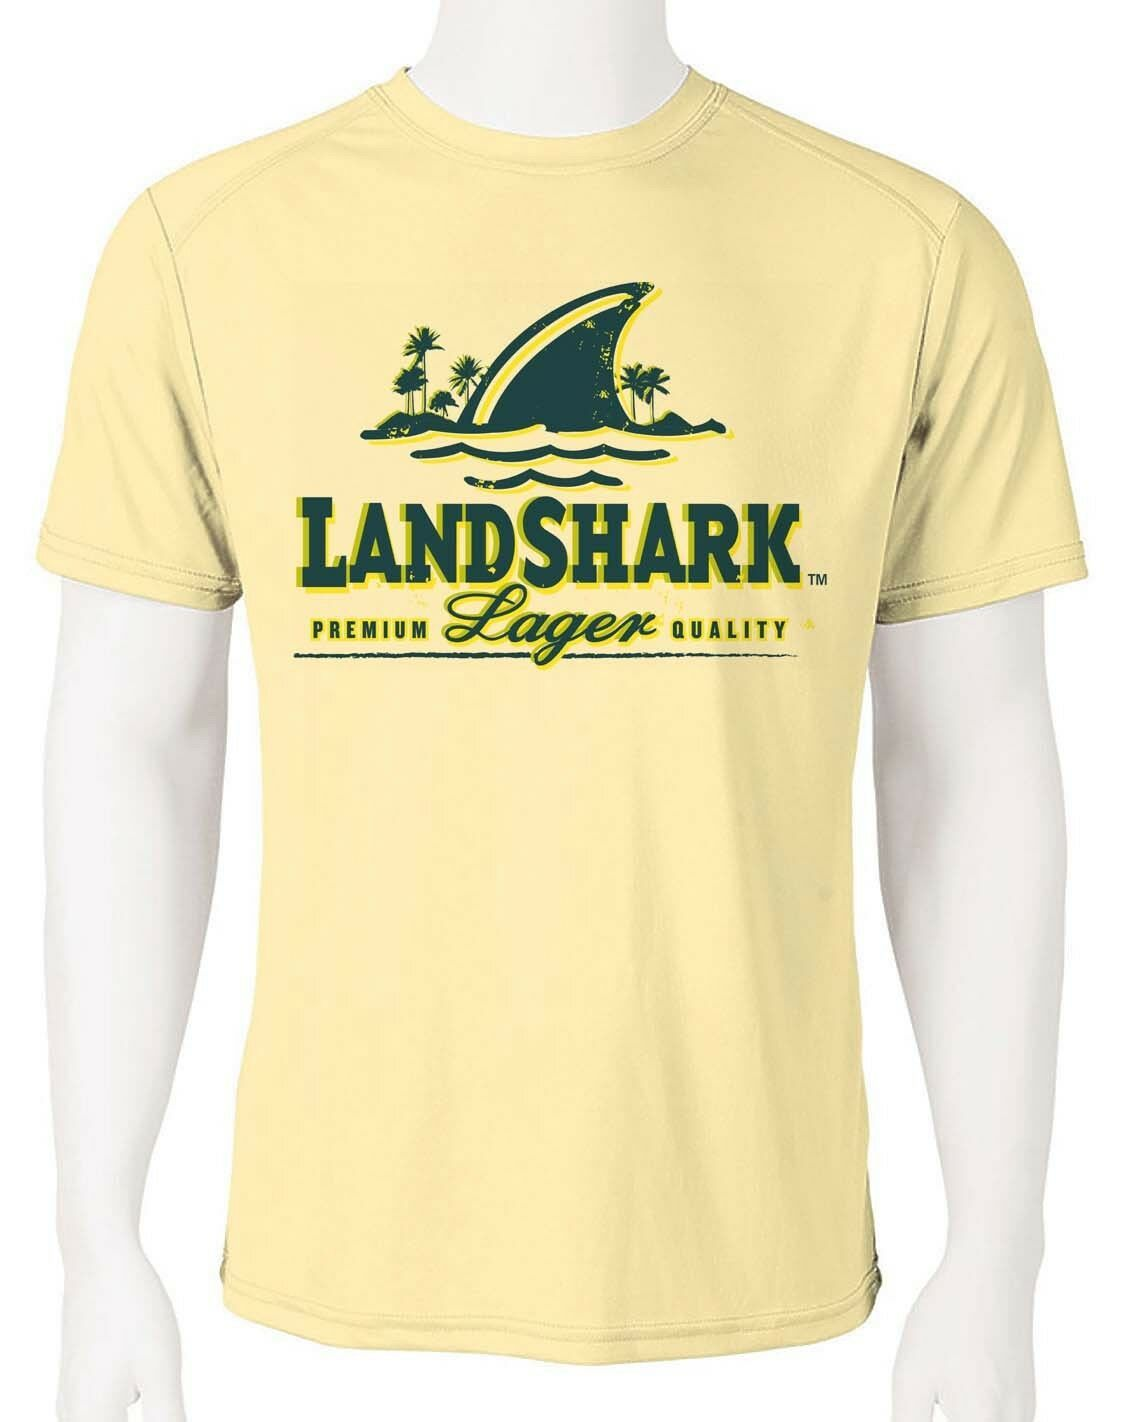 Landshark Dri Fit graphic T-shirt moisture wicking beach beer fishing SPF tee